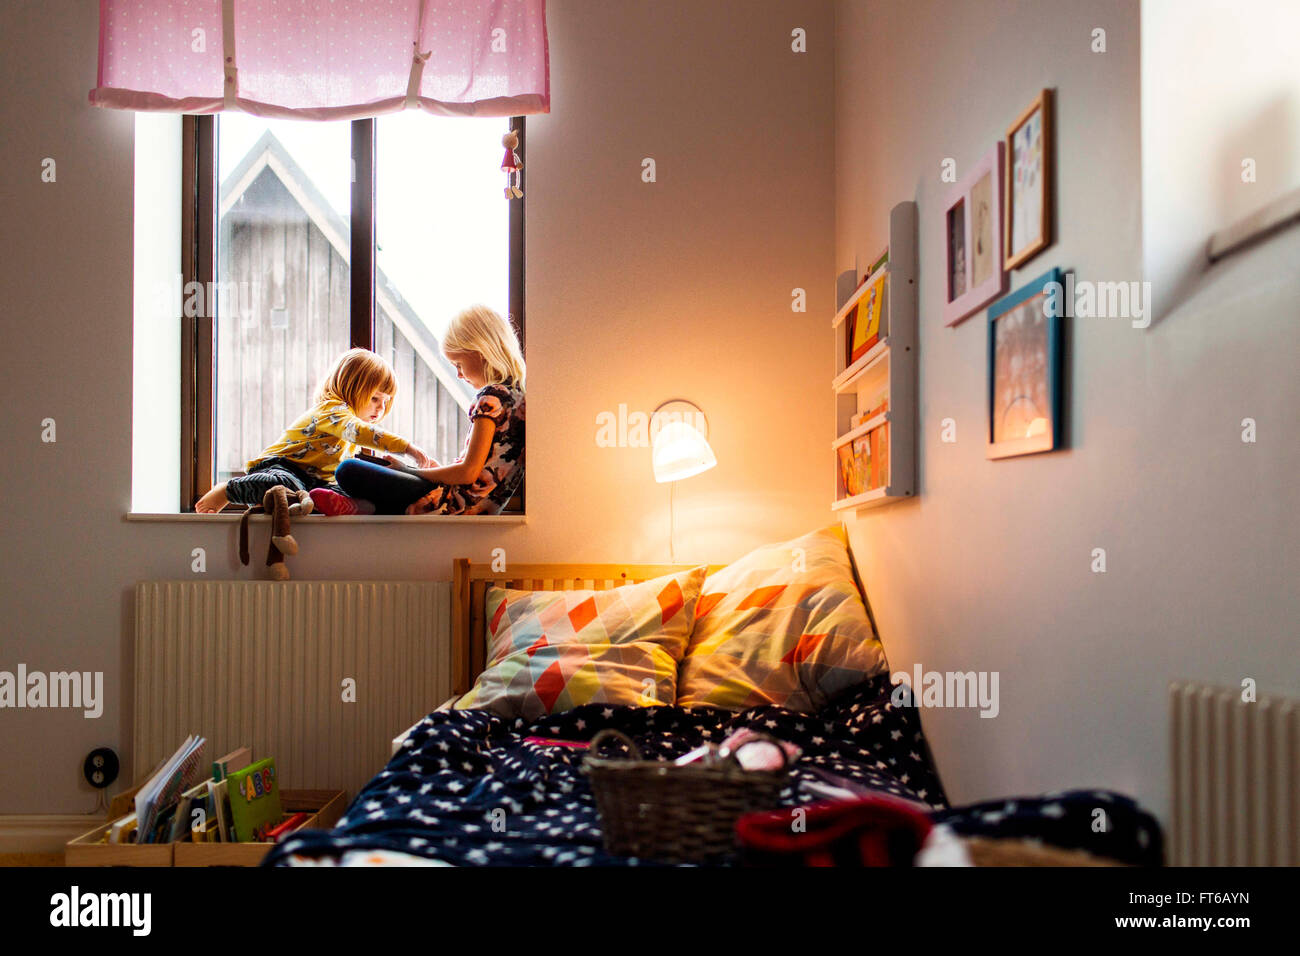 Sisters using digital tablet on window sill - Stock Image